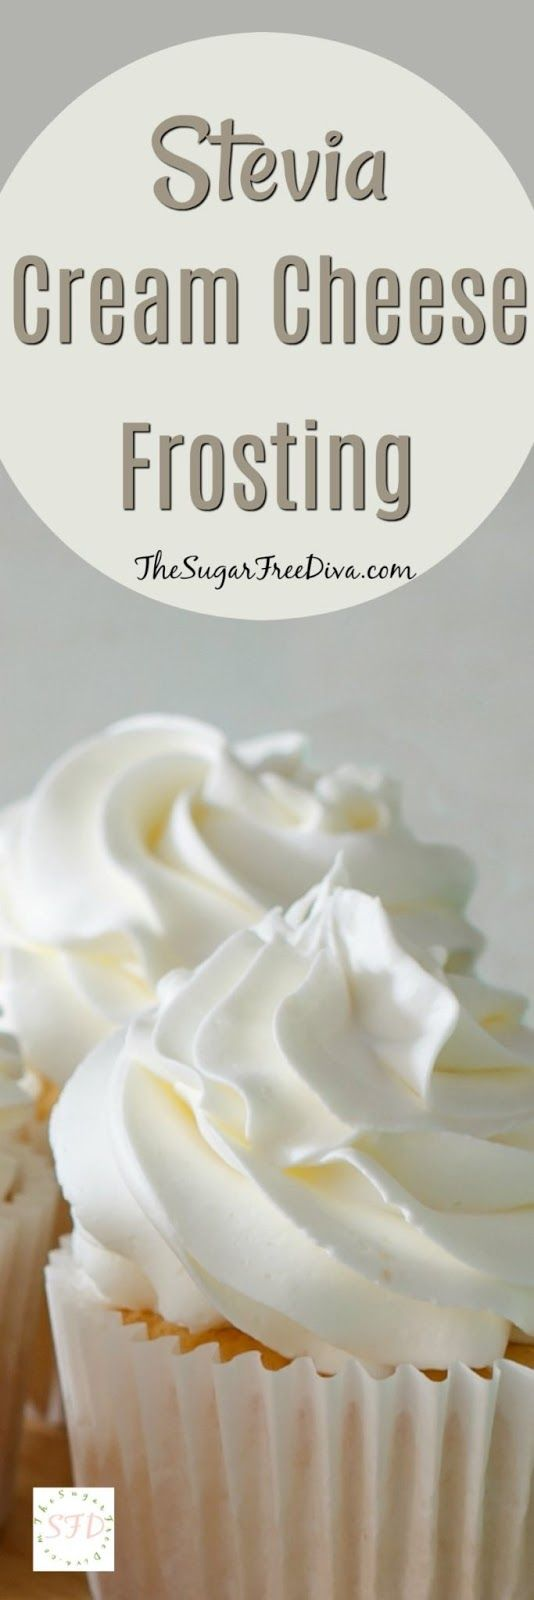 STEVIA CREAM CHEESE FROSTING – Rujolu Recipes Today – Diyet Yemekleri